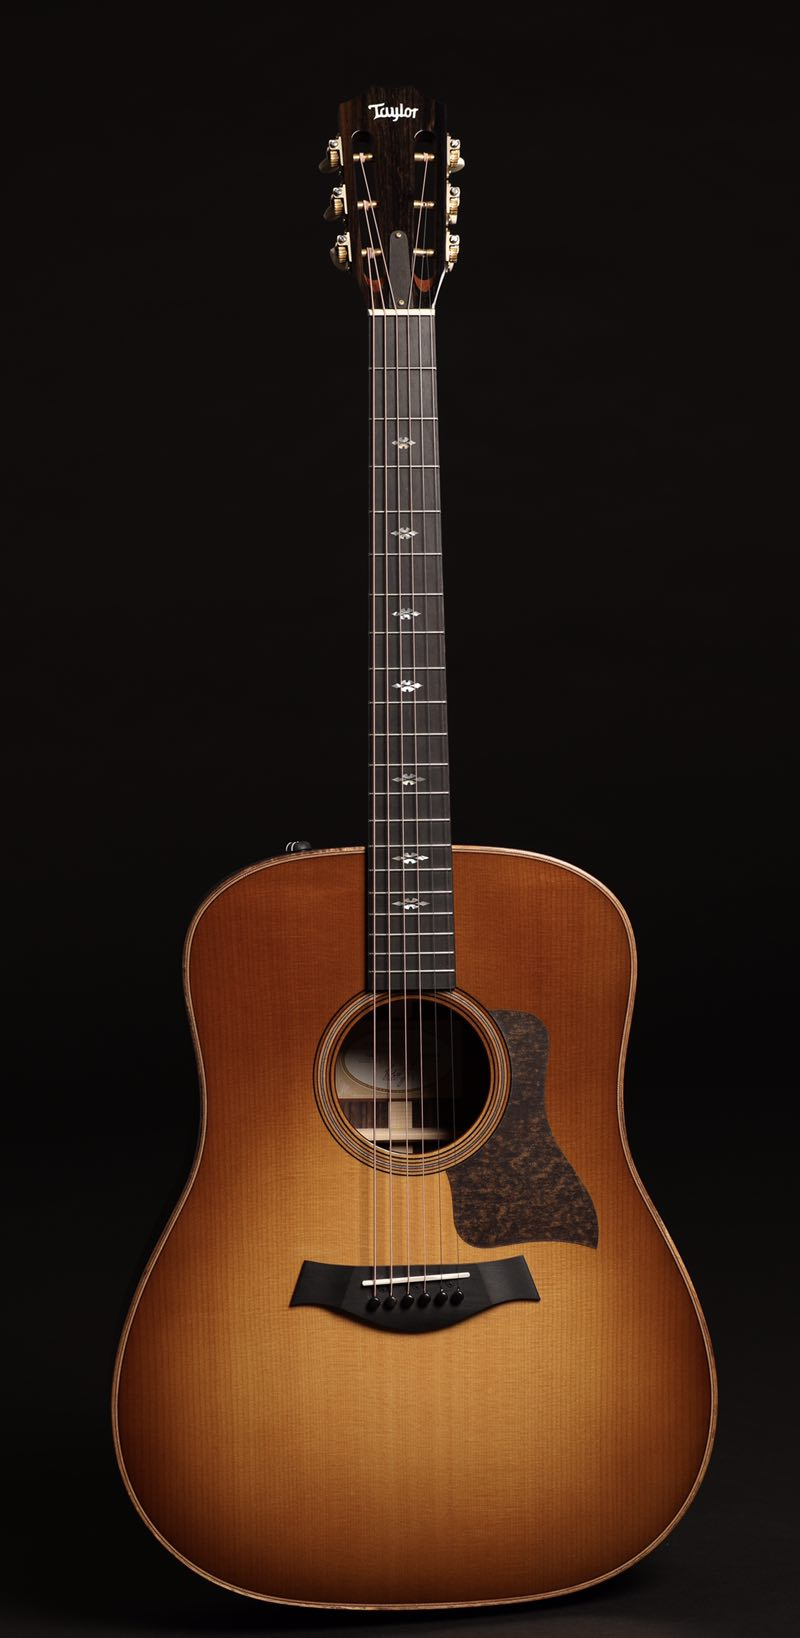 The Taylor 710e Western Sunburst Features A Lutz Spruce Top Over Indian Rosewood Back And Sides This Wood Combination Not Only Lends Itself To Vintage